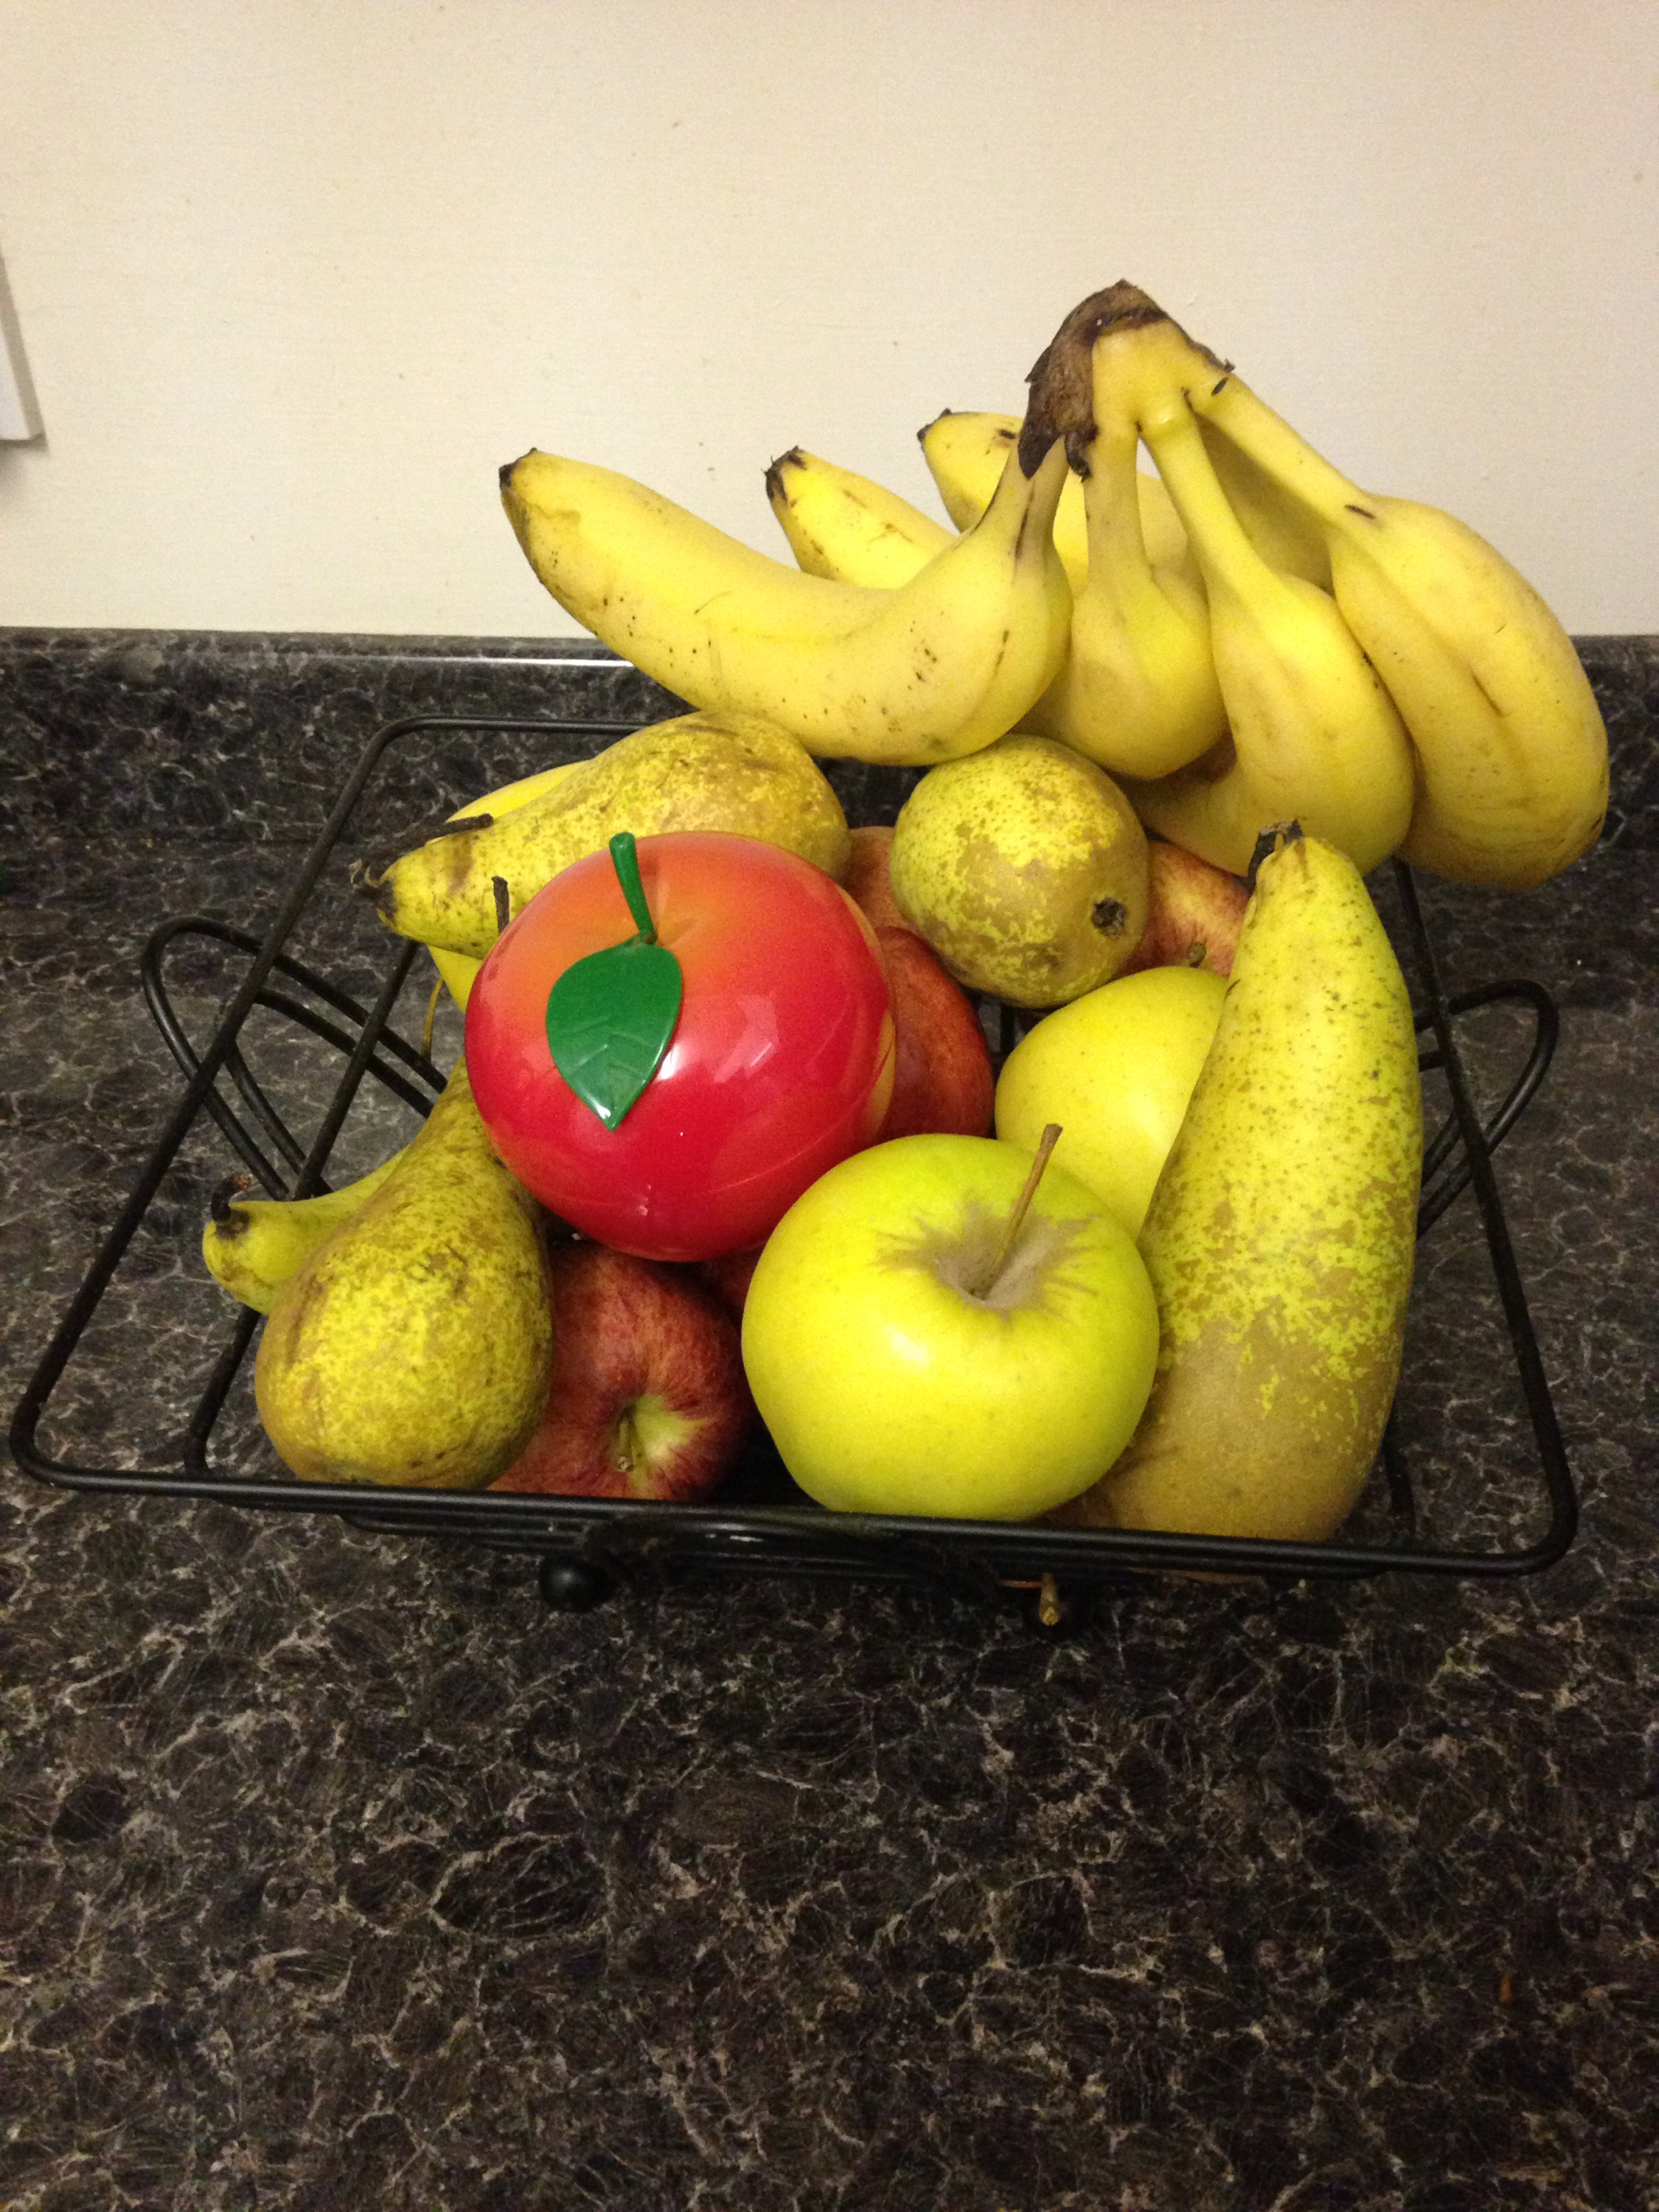 A fruit bowl on a black background with apples, pears, bananas, and Tony Moly Appletox